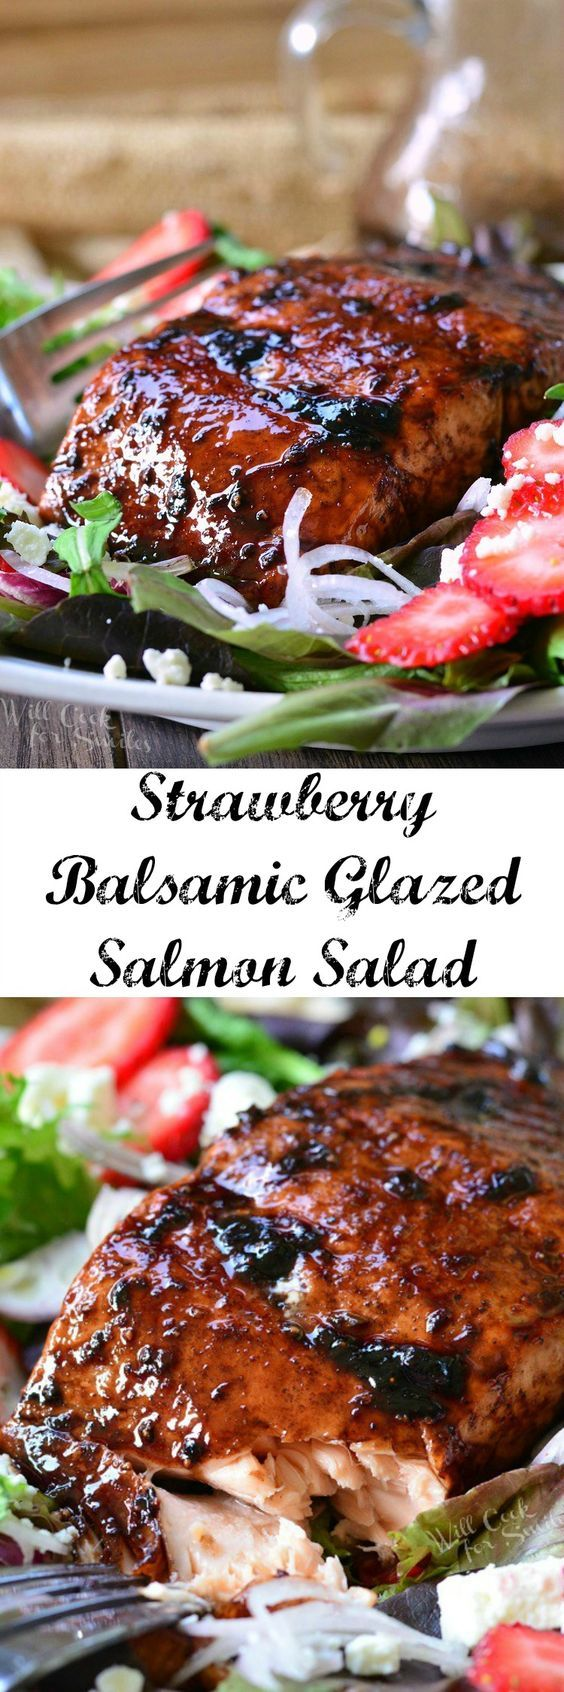 Strawberry Balsamic Glazed Salmon Salad ~ succulent baked salmon glazed with sweet and tangy strawberry balsamic reduction and served over fresh greens...summer salad does not get any better than this!